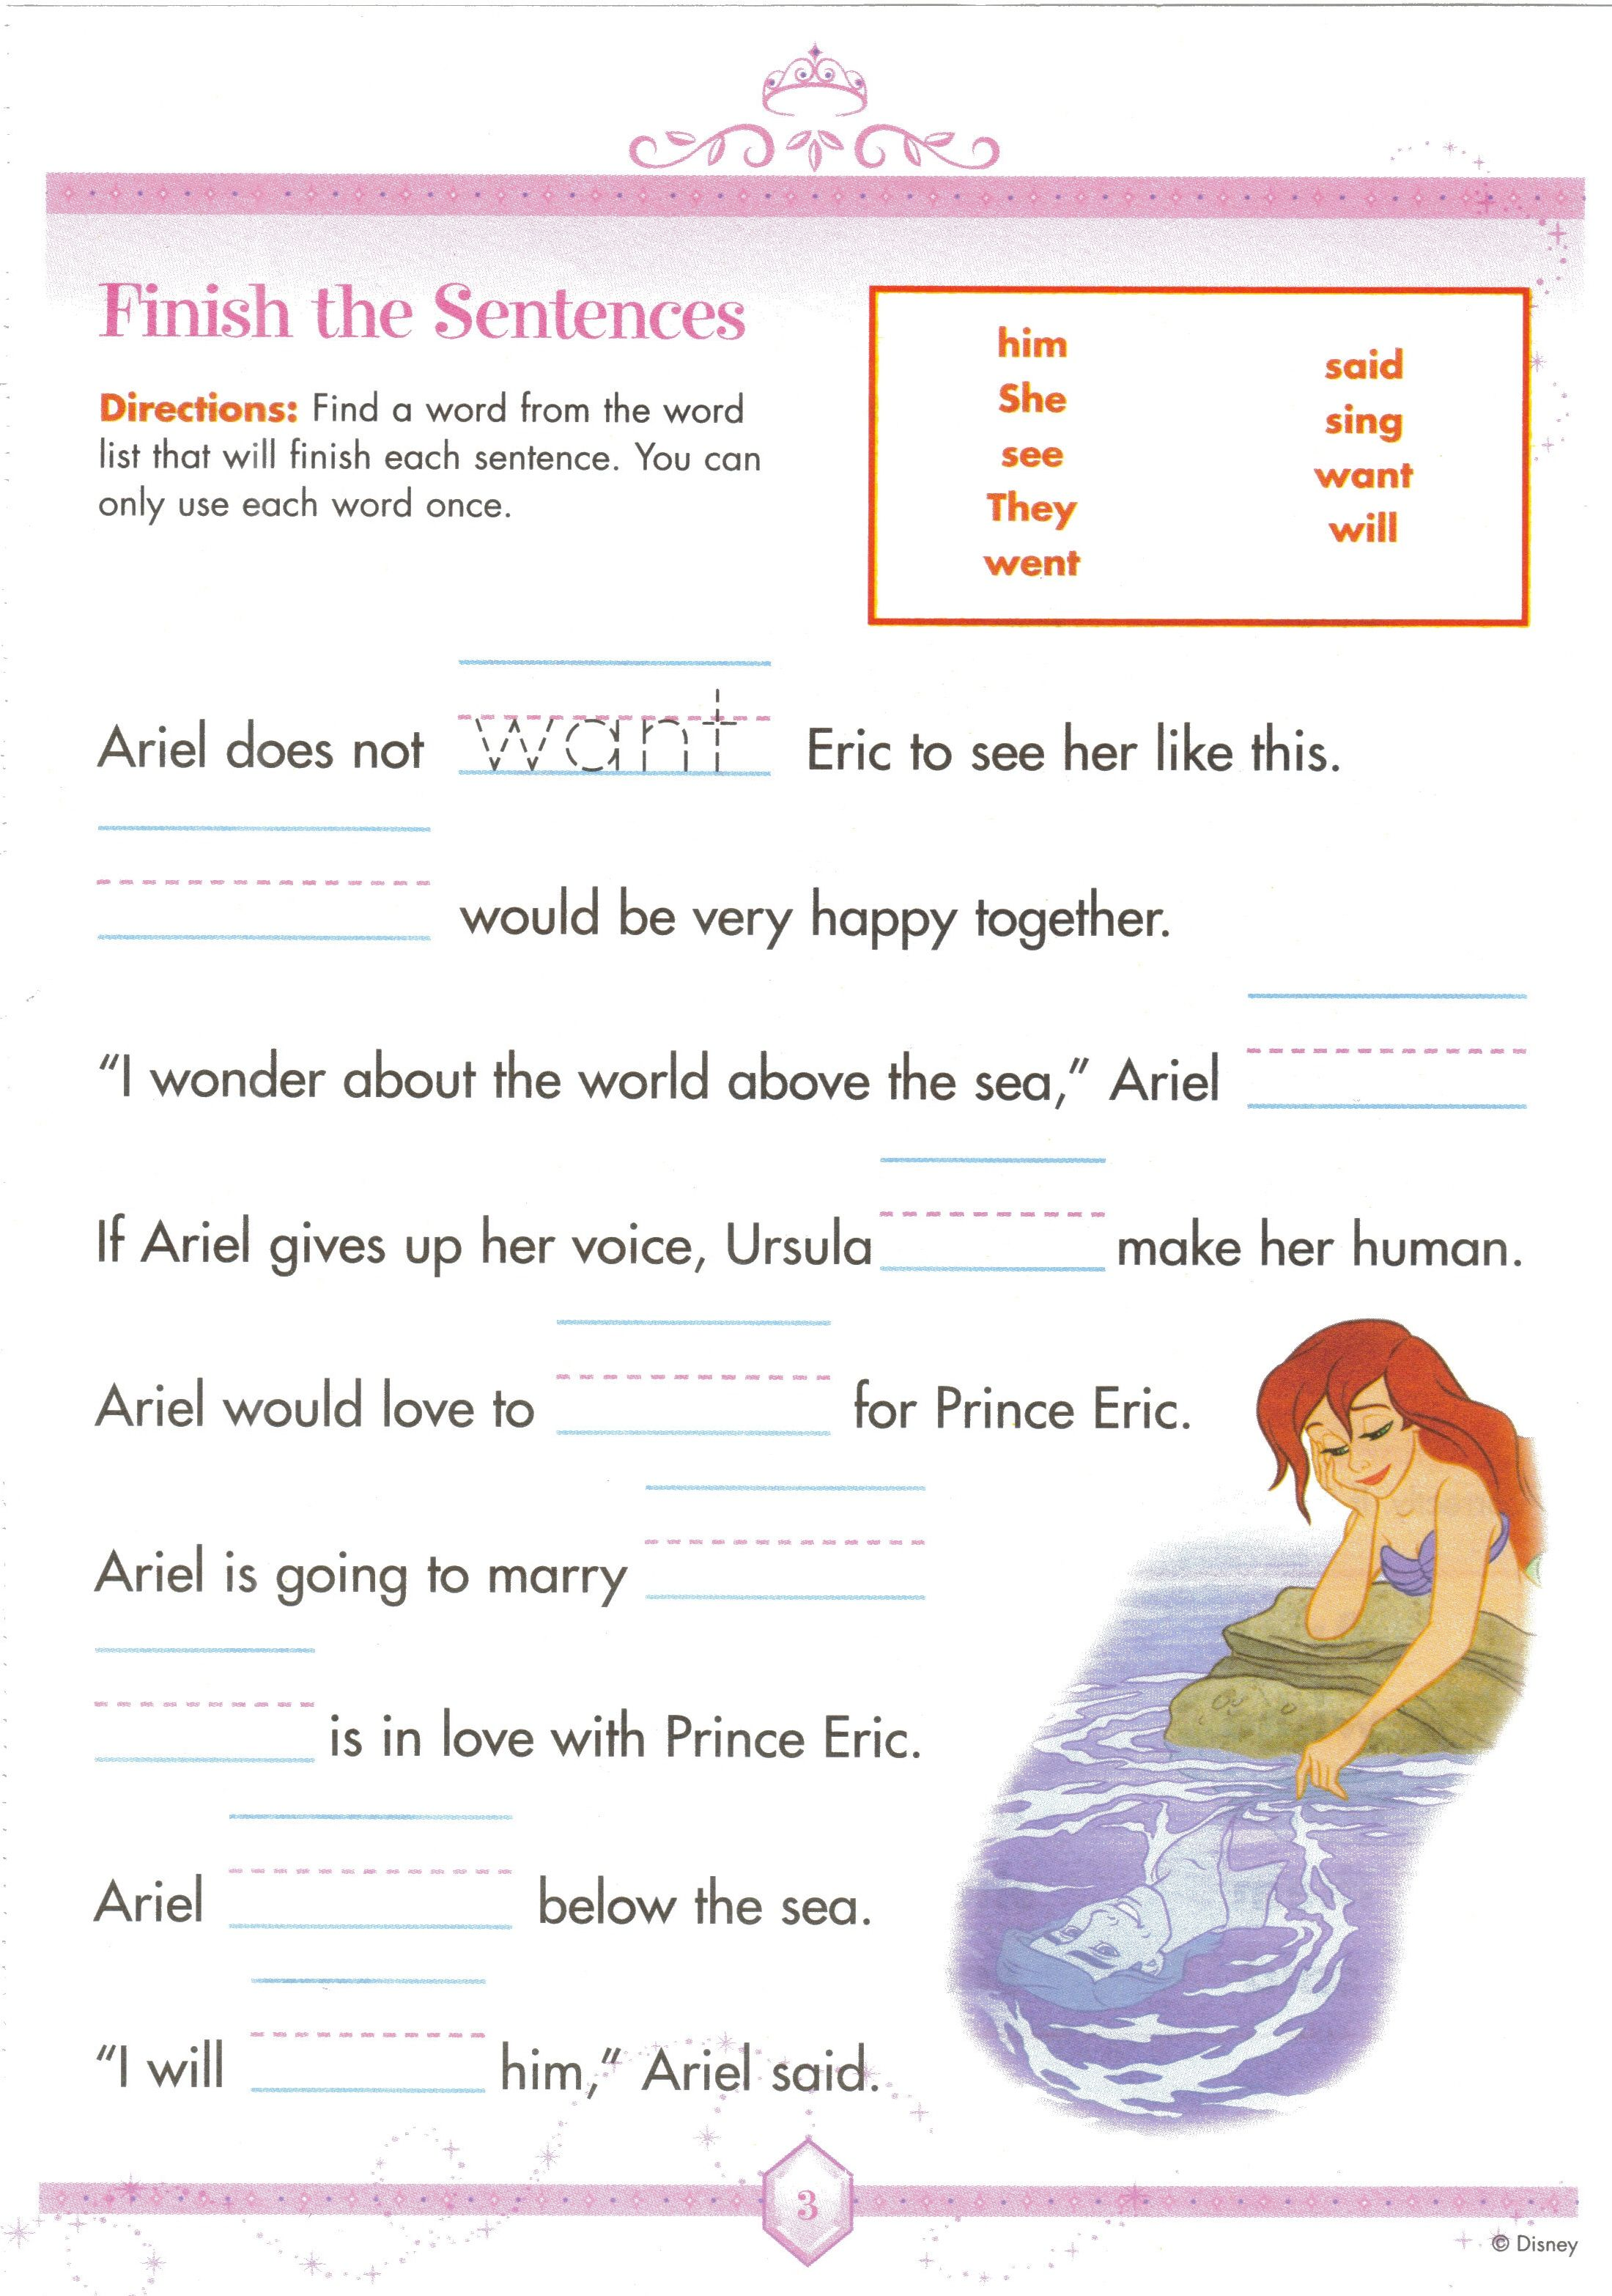 Weirdmailus  Sweet  Images About Worksheets On Pinterest  Fun Facts For Kids  With Entrancing  Images About Worksheets On Pinterest  Fun Facts For Kids Earth Day Worksheets And Jungles With Comely Adding Double Digits Worksheet Also Senior Kg Worksheets In Addition English Grammar Conjunctions Worksheets And My Worksheet As Well As Worksheets On Pictographs Additionally Activities For Preschoolers Worksheets From Pinterestcom With Weirdmailus  Entrancing  Images About Worksheets On Pinterest  Fun Facts For Kids  With Comely  Images About Worksheets On Pinterest  Fun Facts For Kids Earth Day Worksheets And Jungles And Sweet Adding Double Digits Worksheet Also Senior Kg Worksheets In Addition English Grammar Conjunctions Worksheets From Pinterestcom